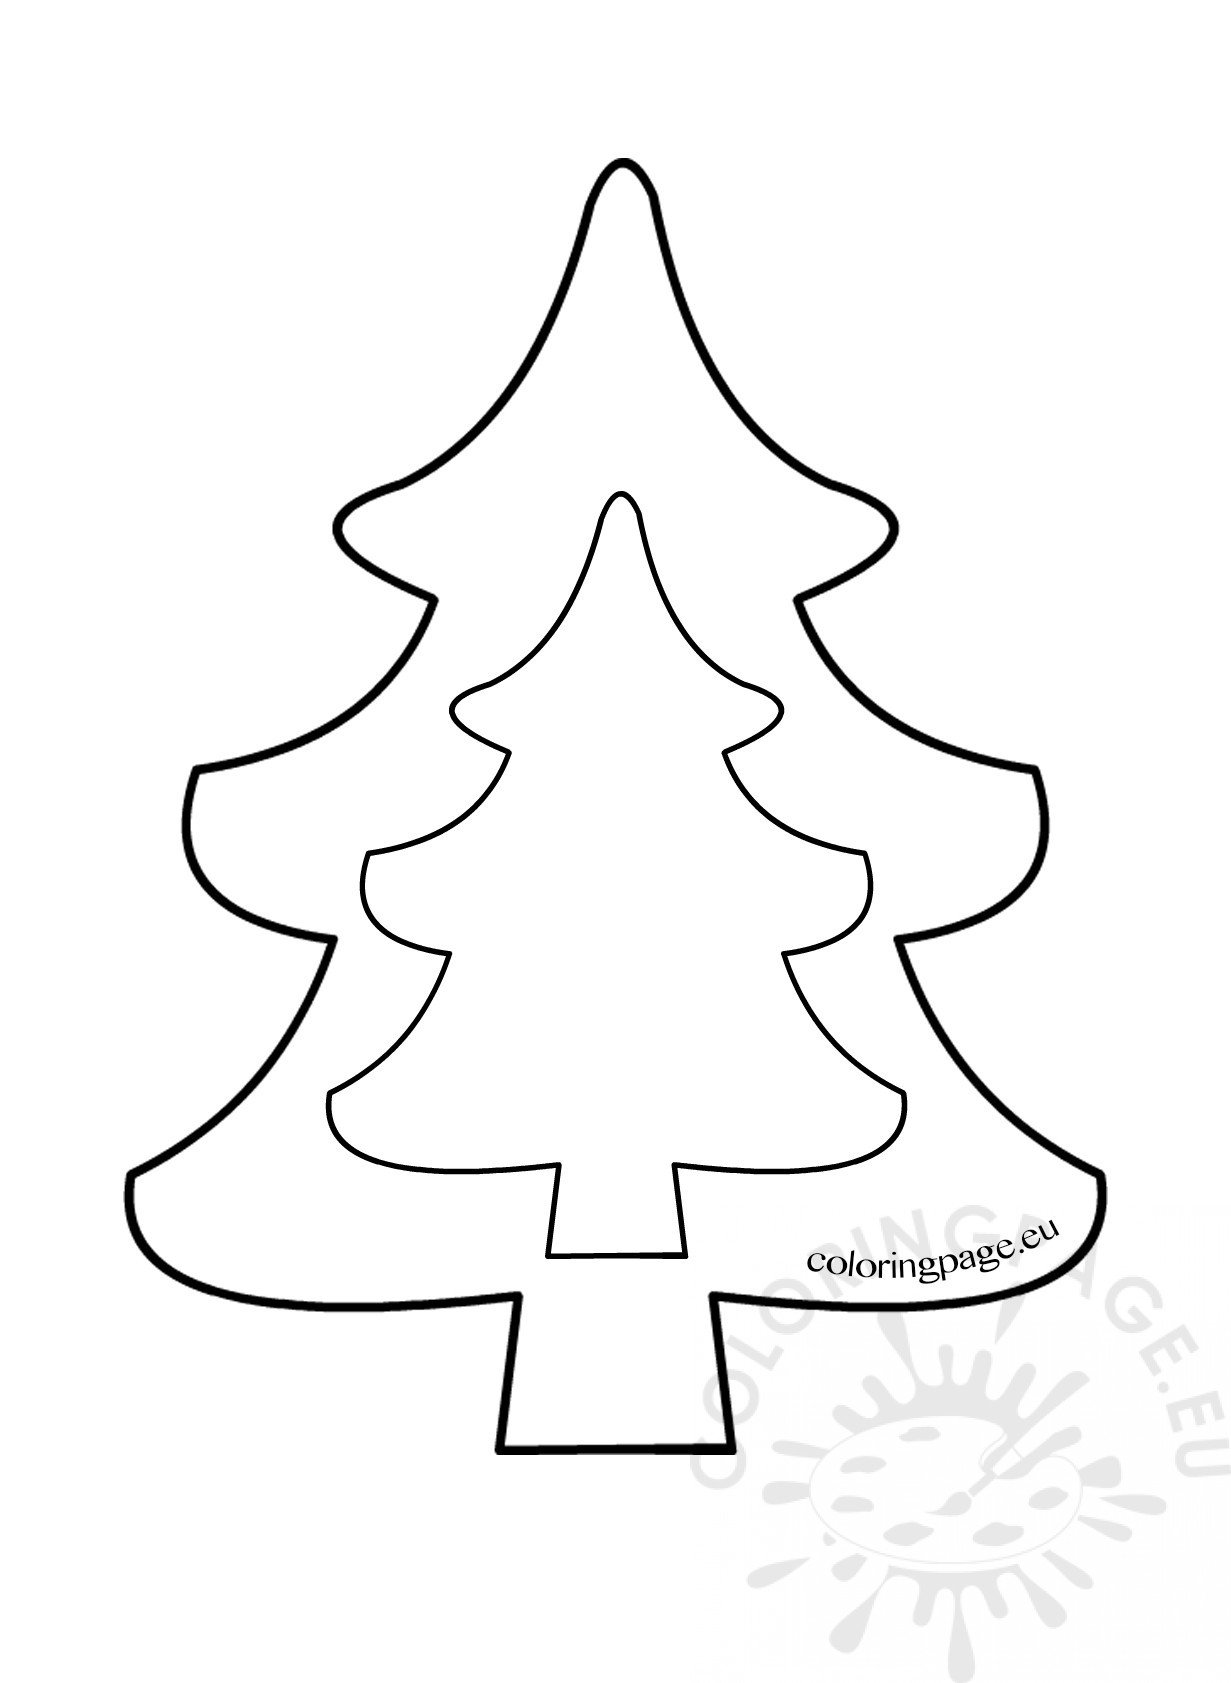 rudolph reindeer coloring pages on fish coloring pages santa